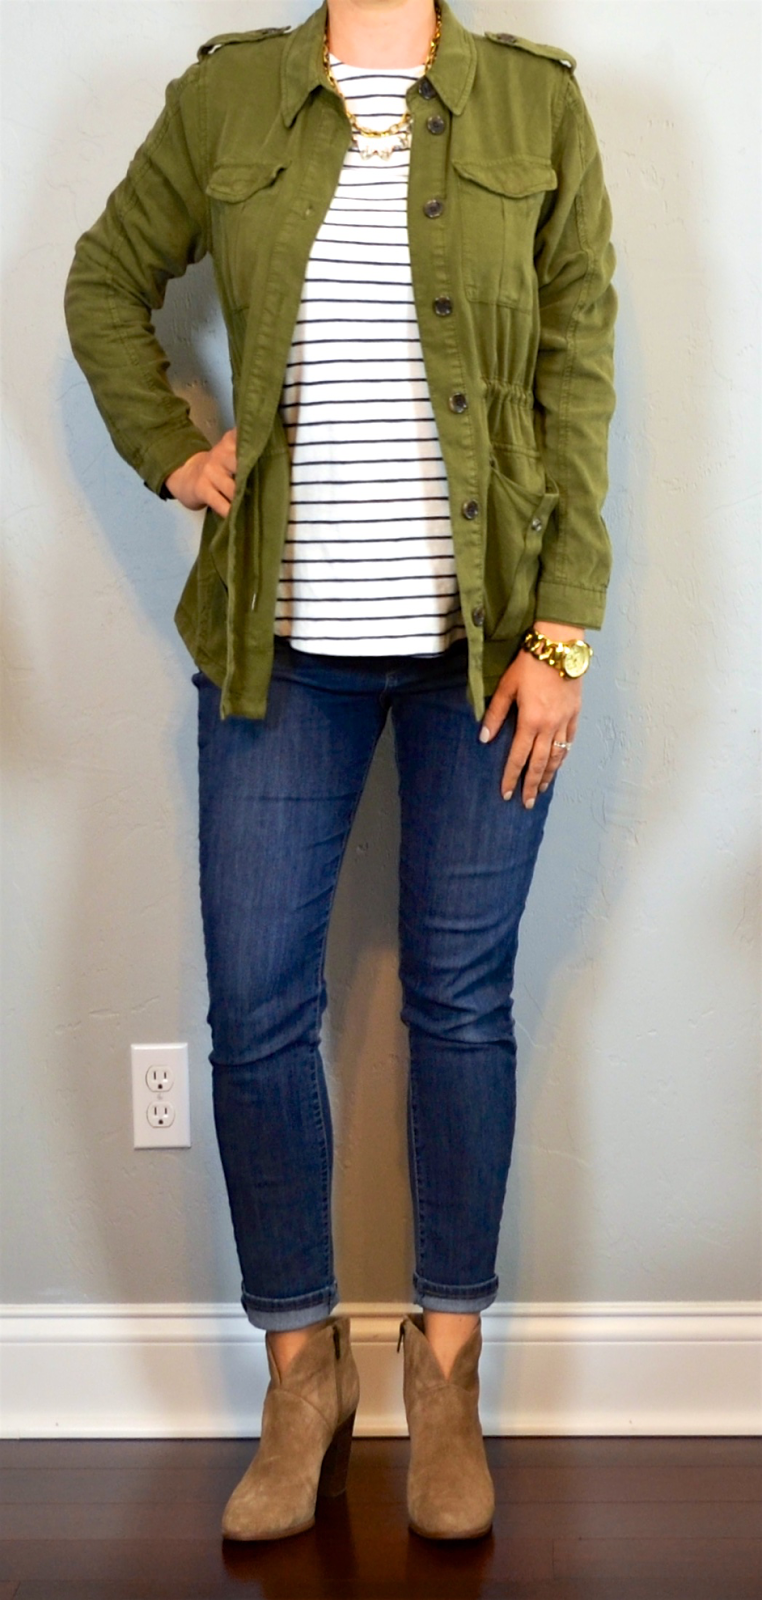 Outfit post green military jacket striped shirt skinny jeans ankle boots